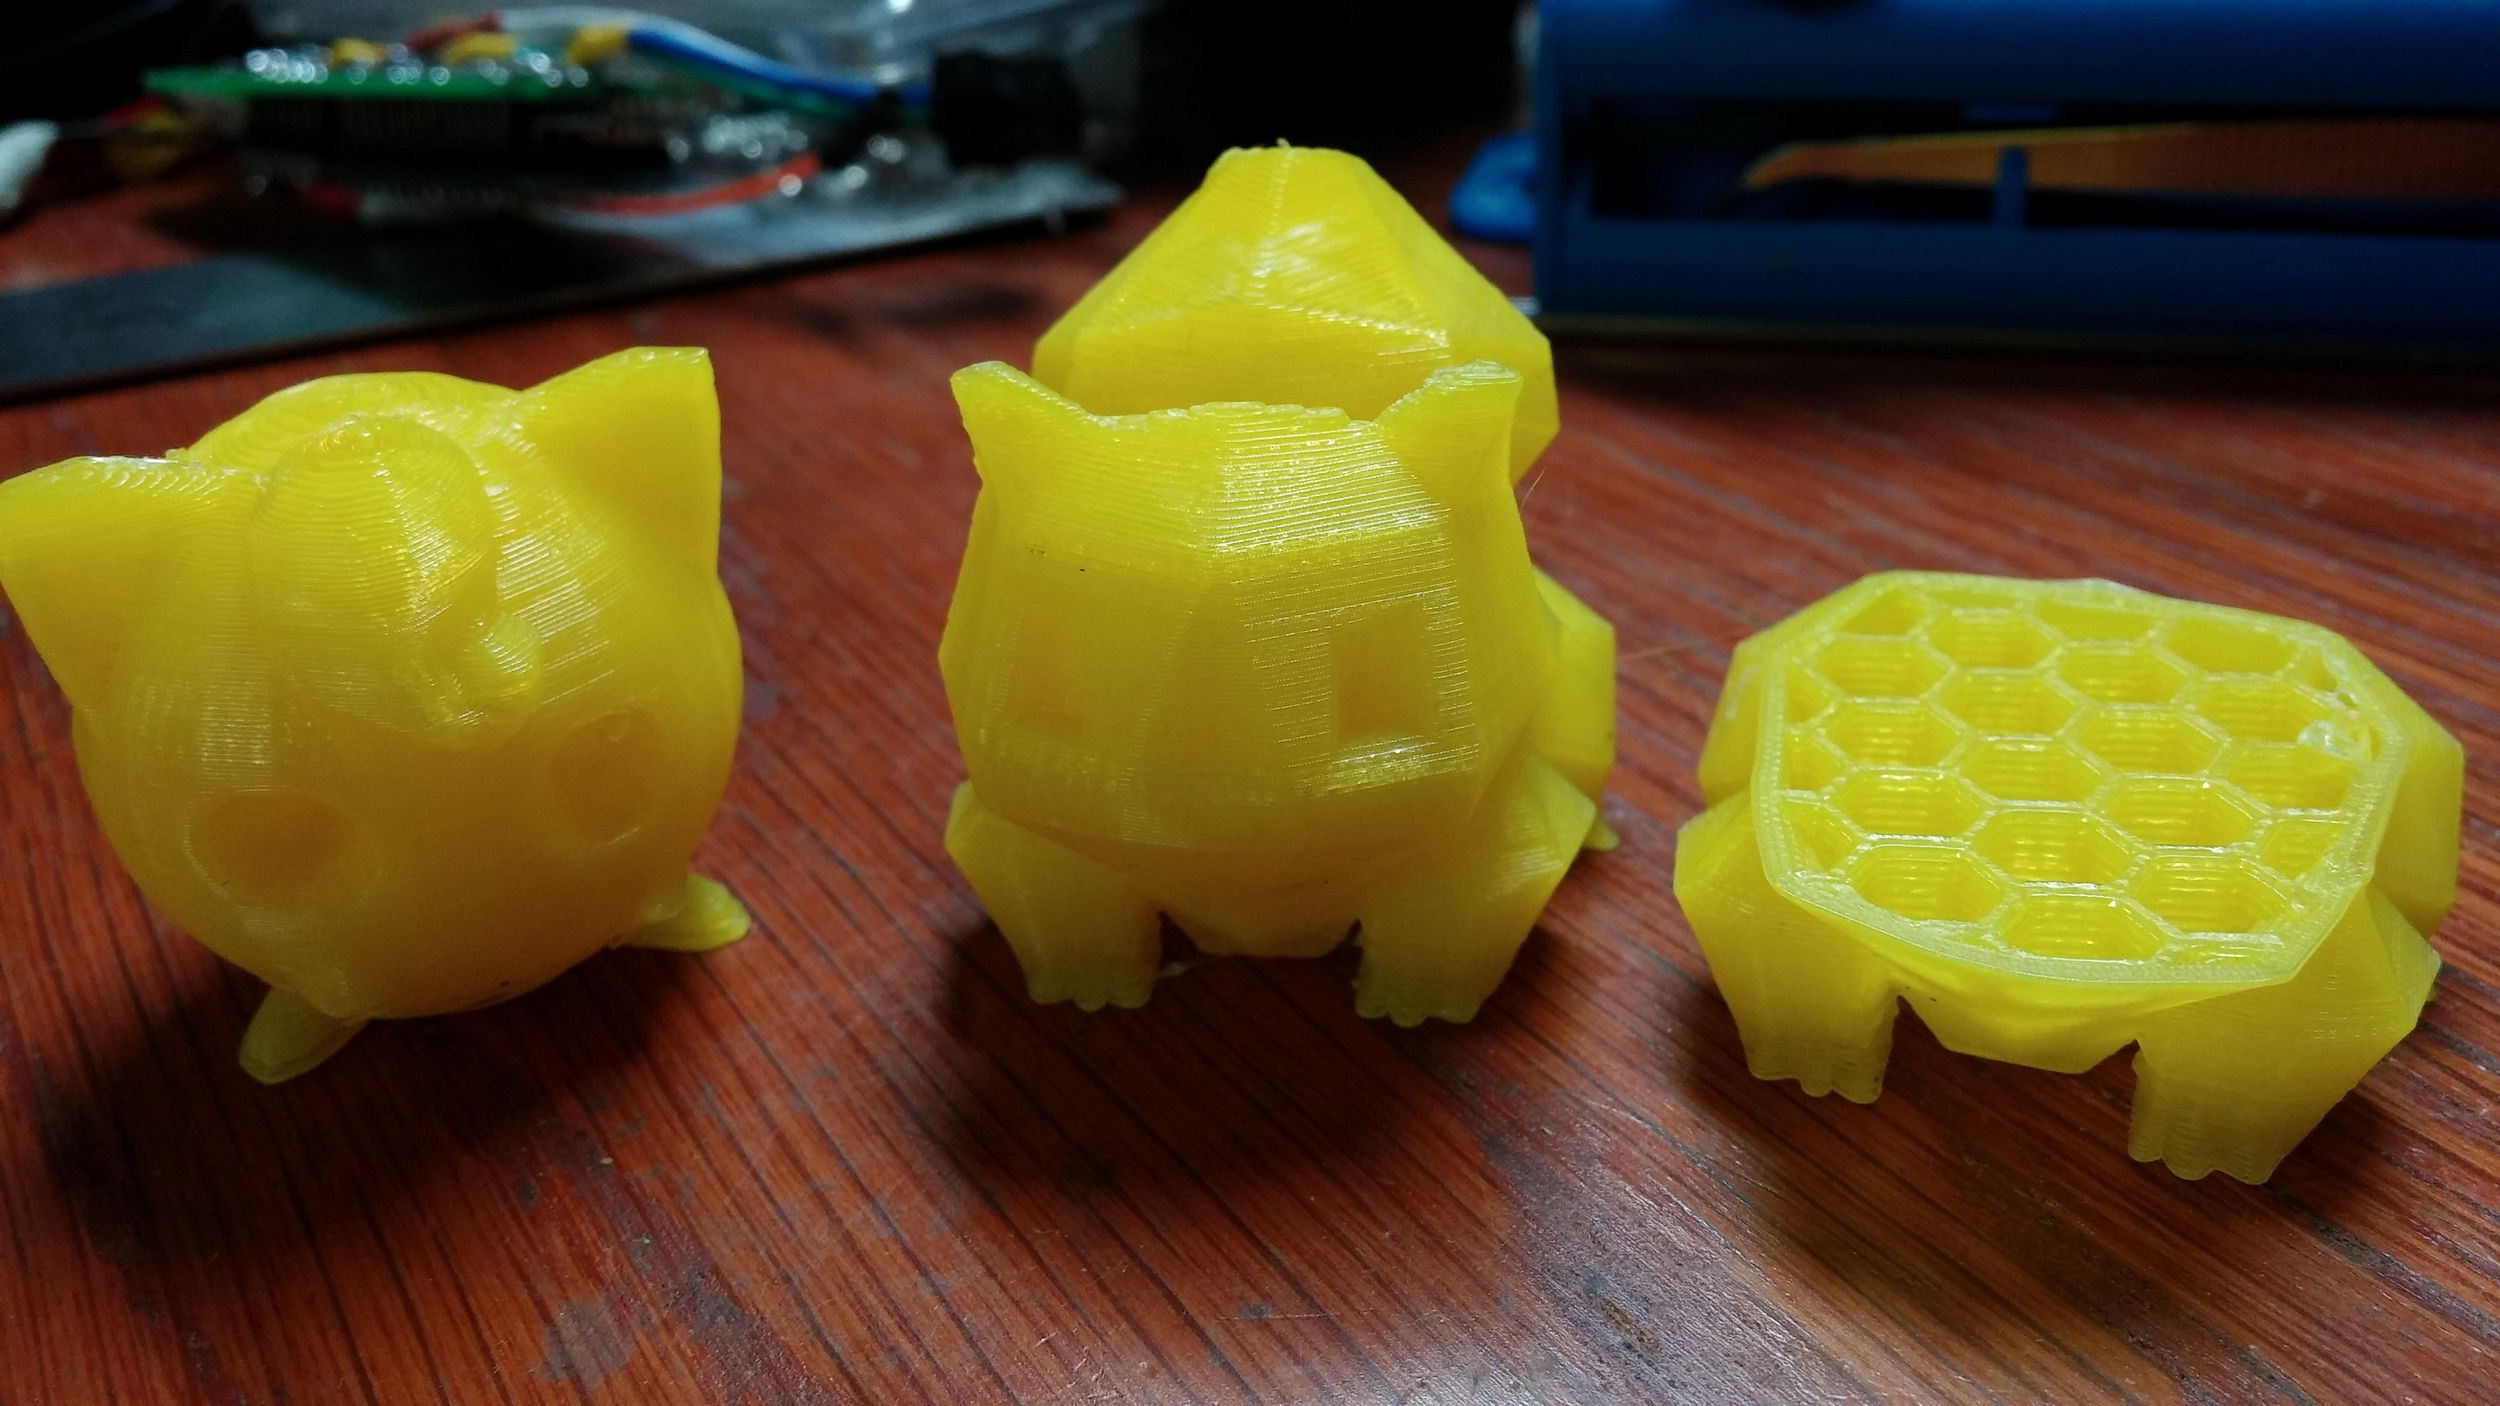 All models are downloaded from  Thingiverse .